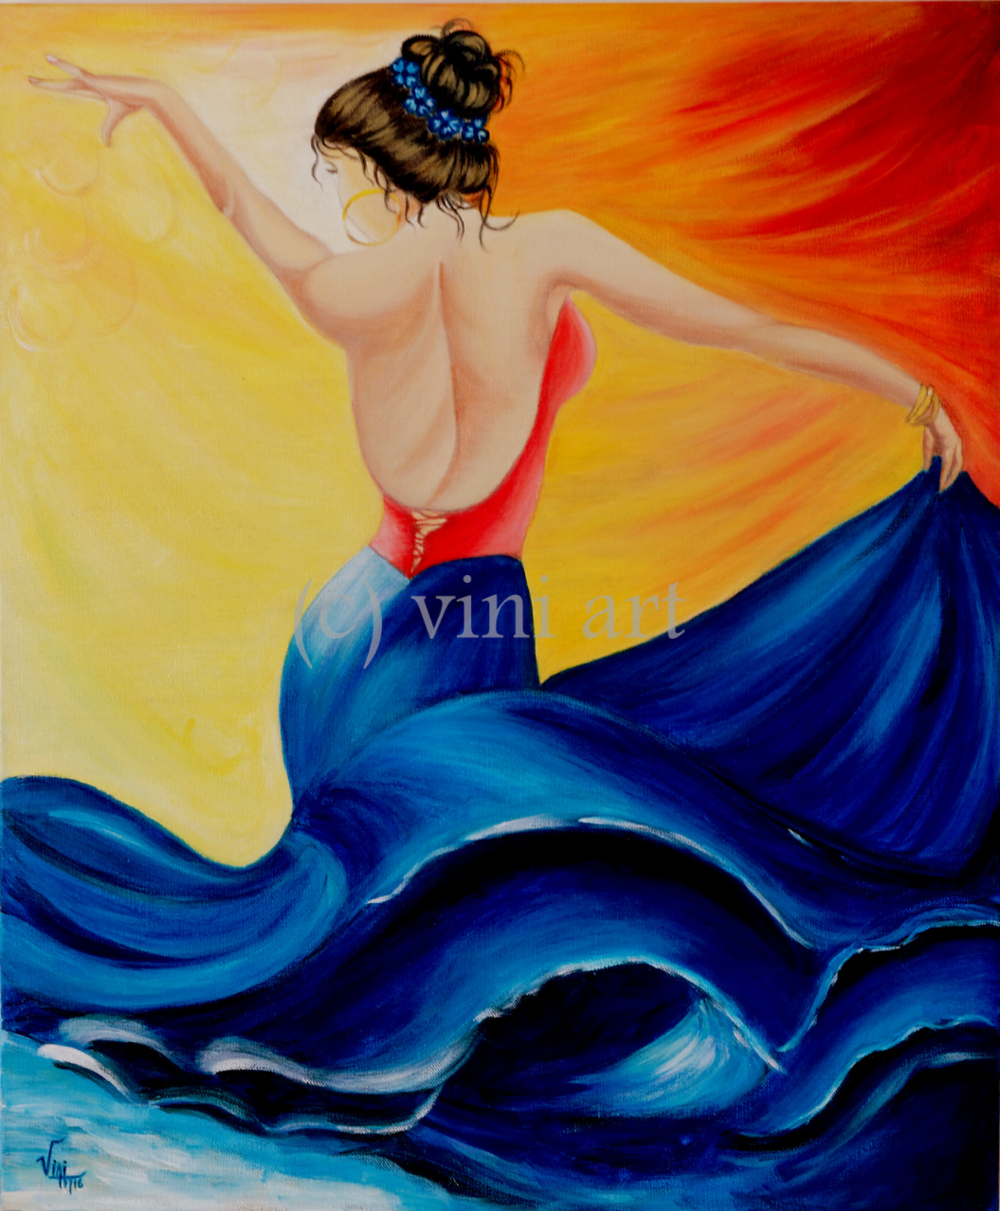 vinita_mathur_Flamenco_acrylic on canvas_20x24.jpg